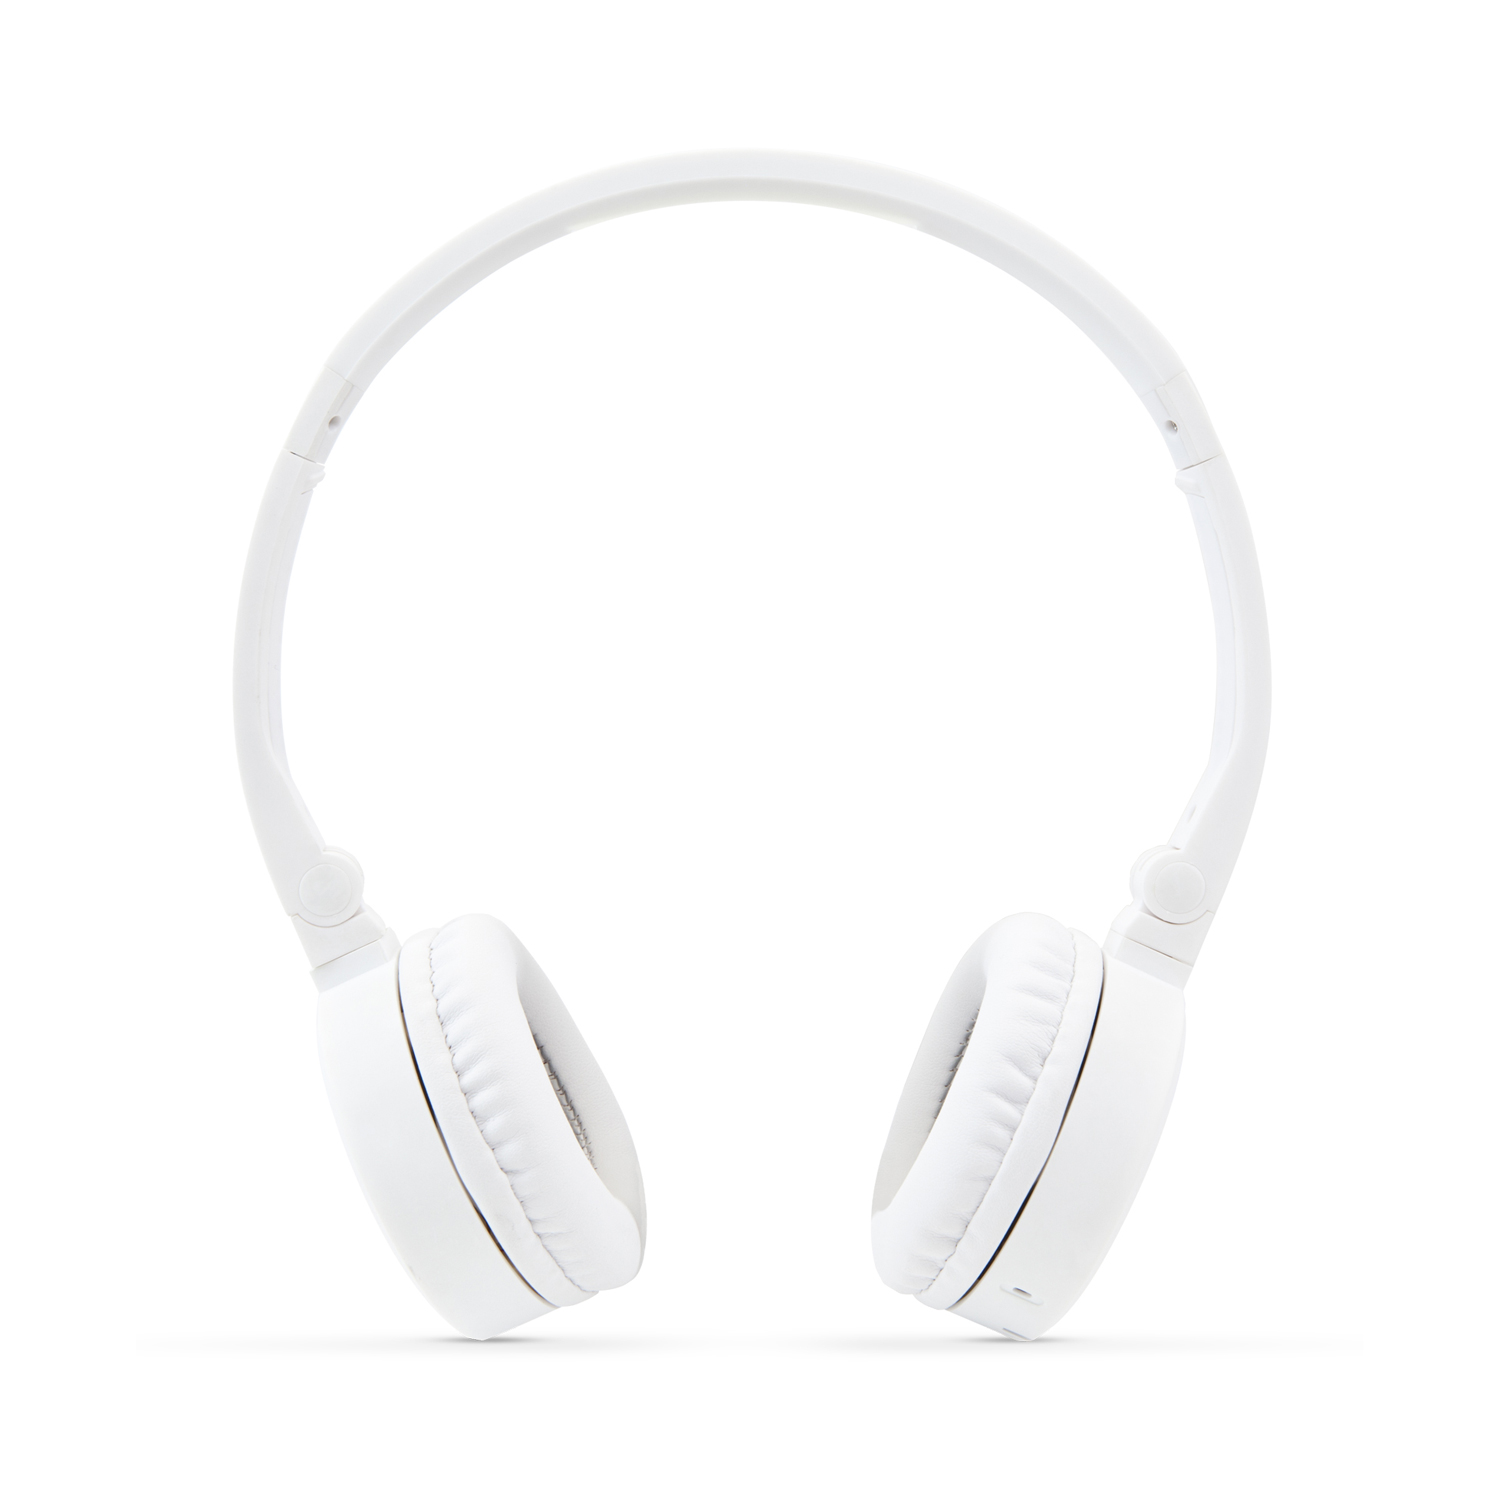 Price Comparisons AudioMX Wireless CSR Bluetooth 4.0 Stereo Over-Ear Headphones With Built-in Mic, Noise Cancelling, Foldable, Lightweight